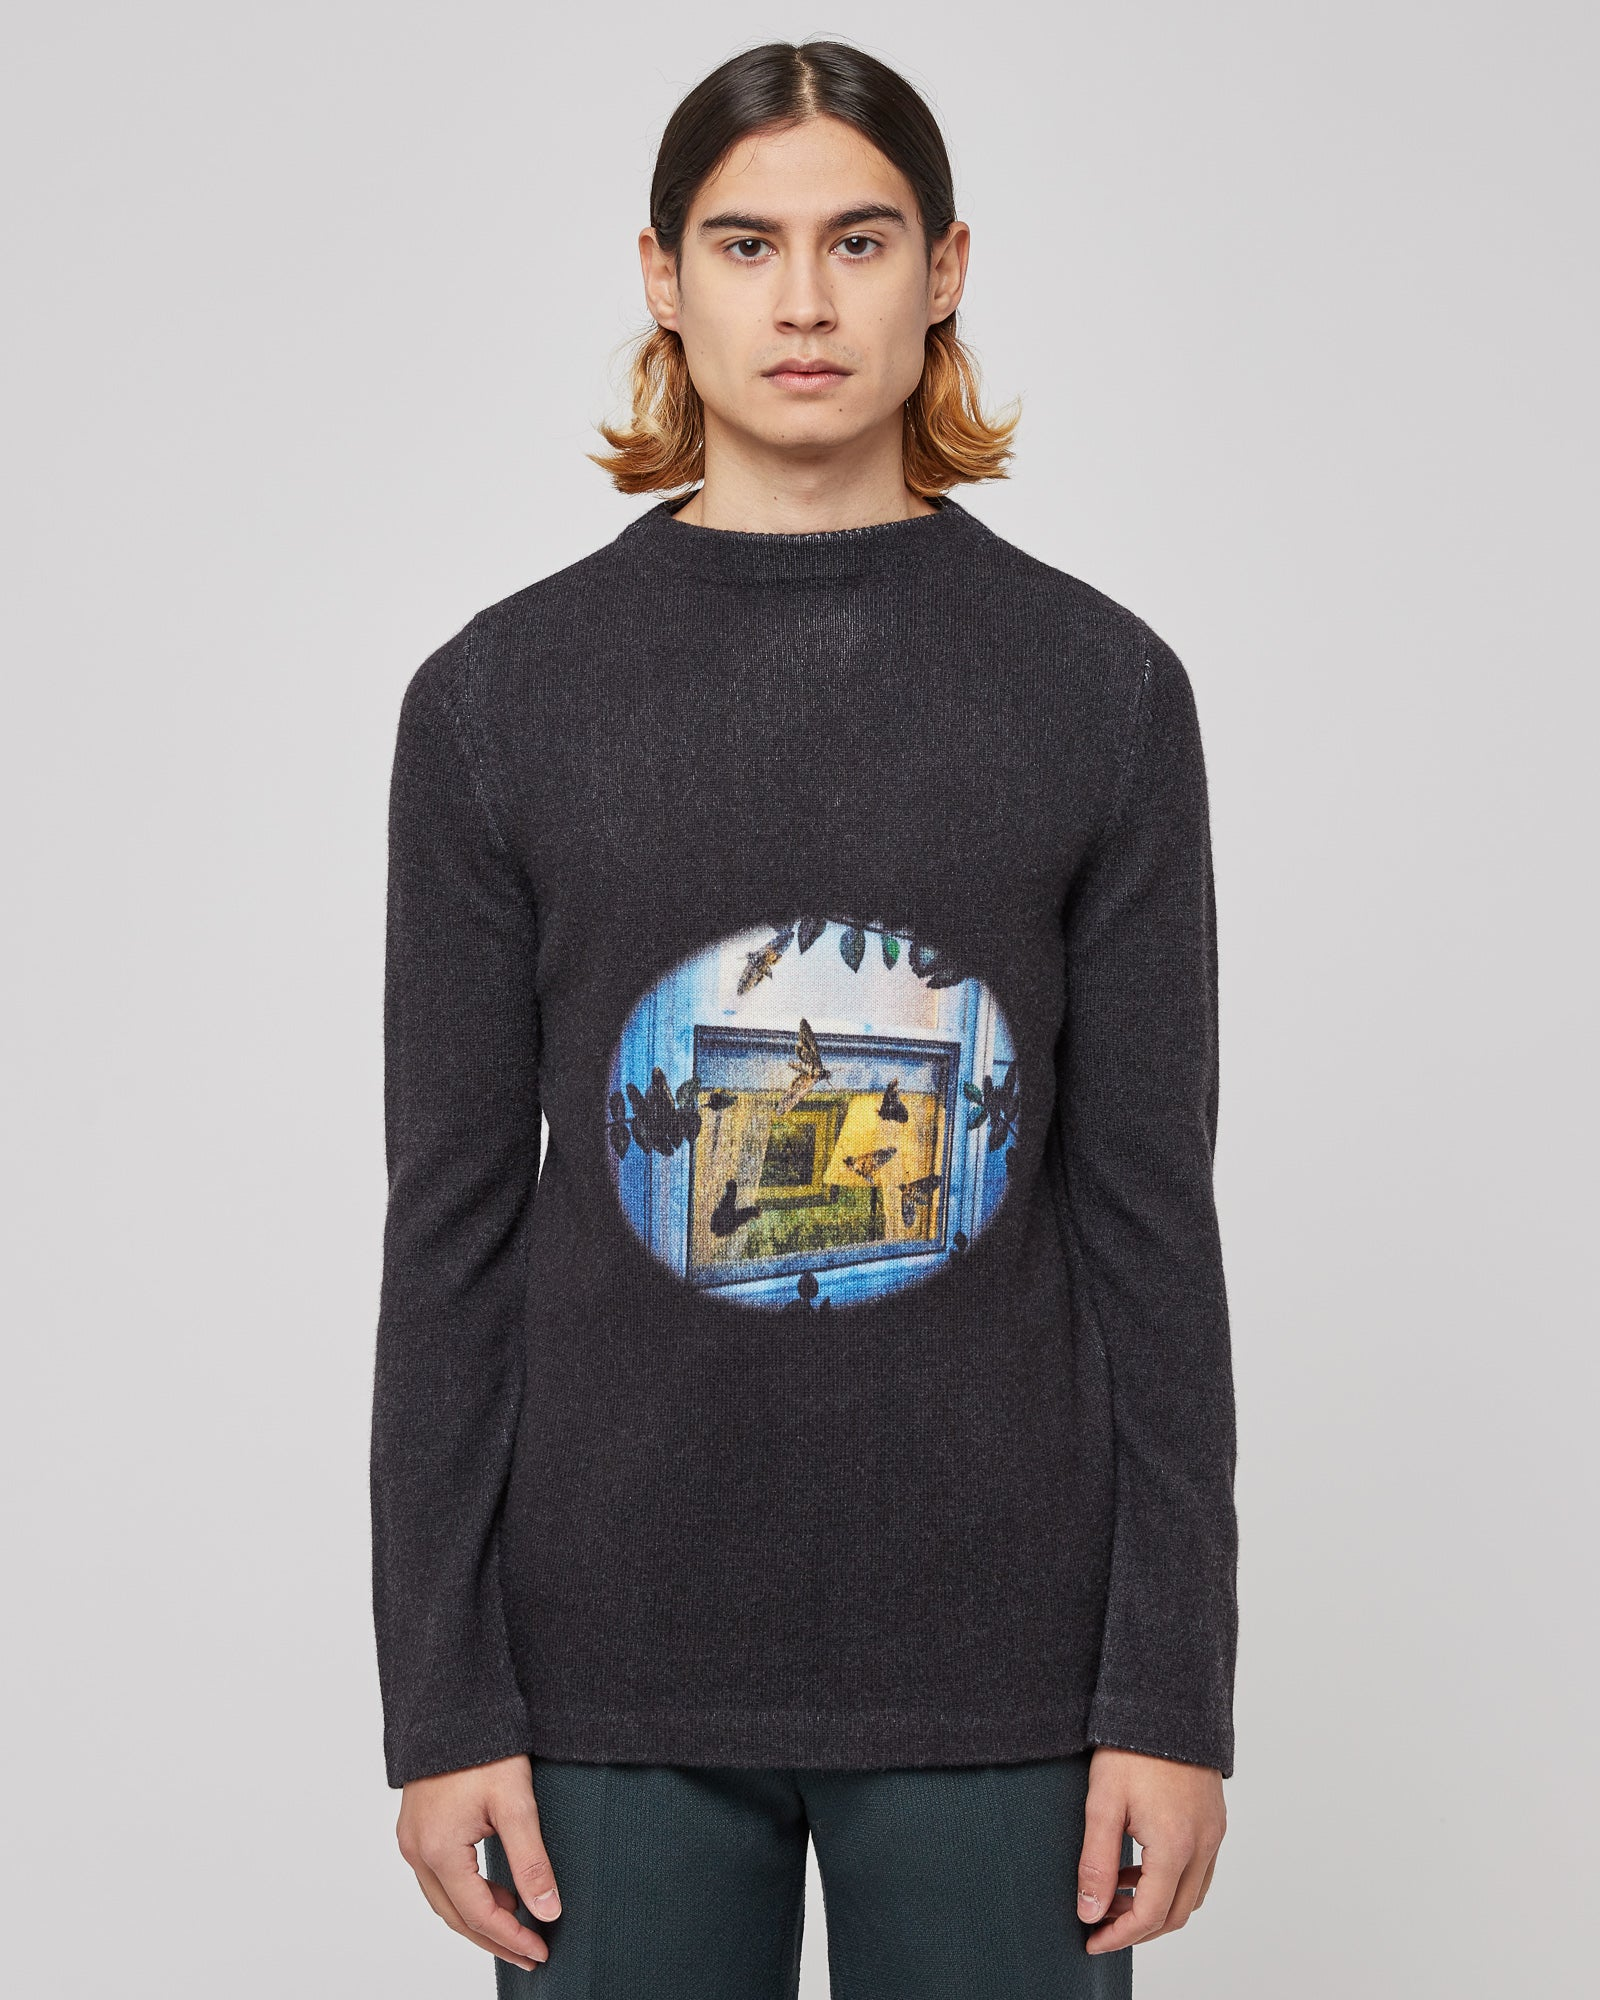 Fremont Printed Turtleneck in Worn Print Black